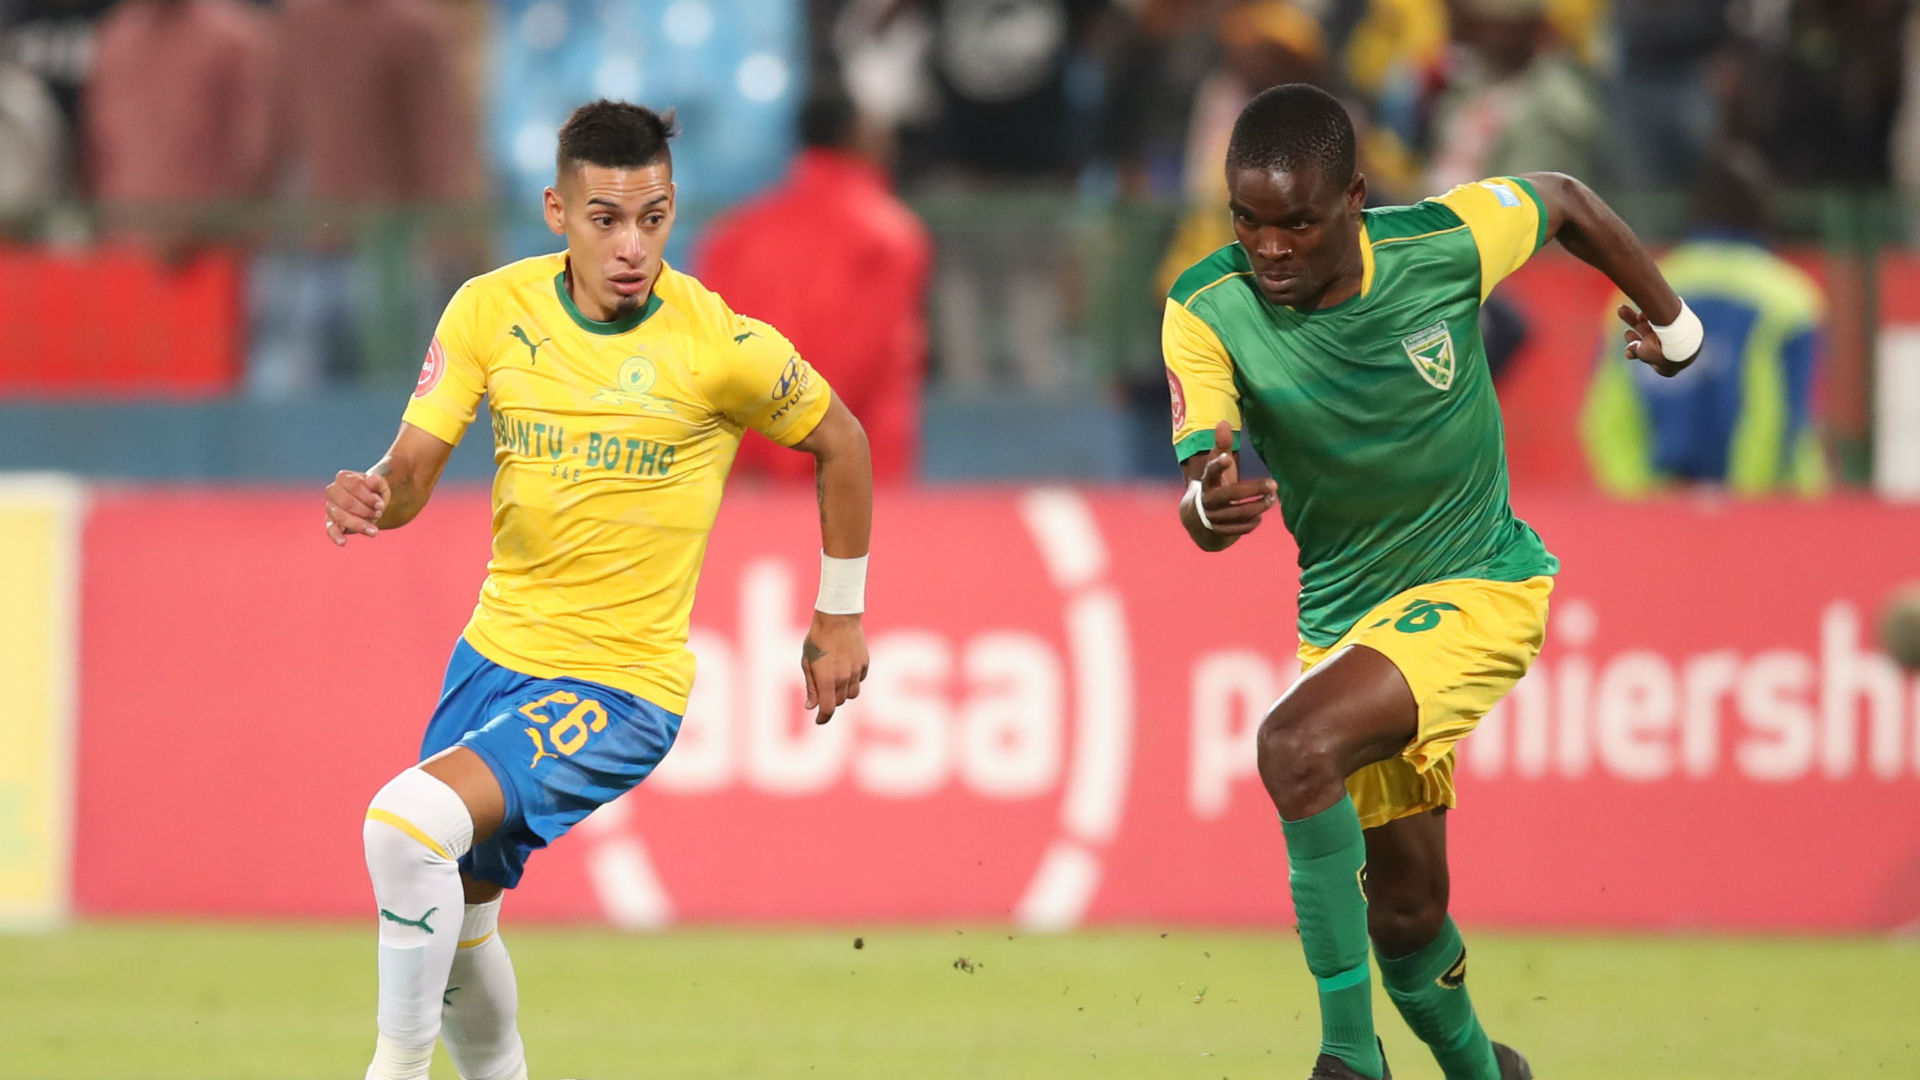 Gaston Sirino, Sundowns & Danny Phiri, Golden Arrows, May 2019